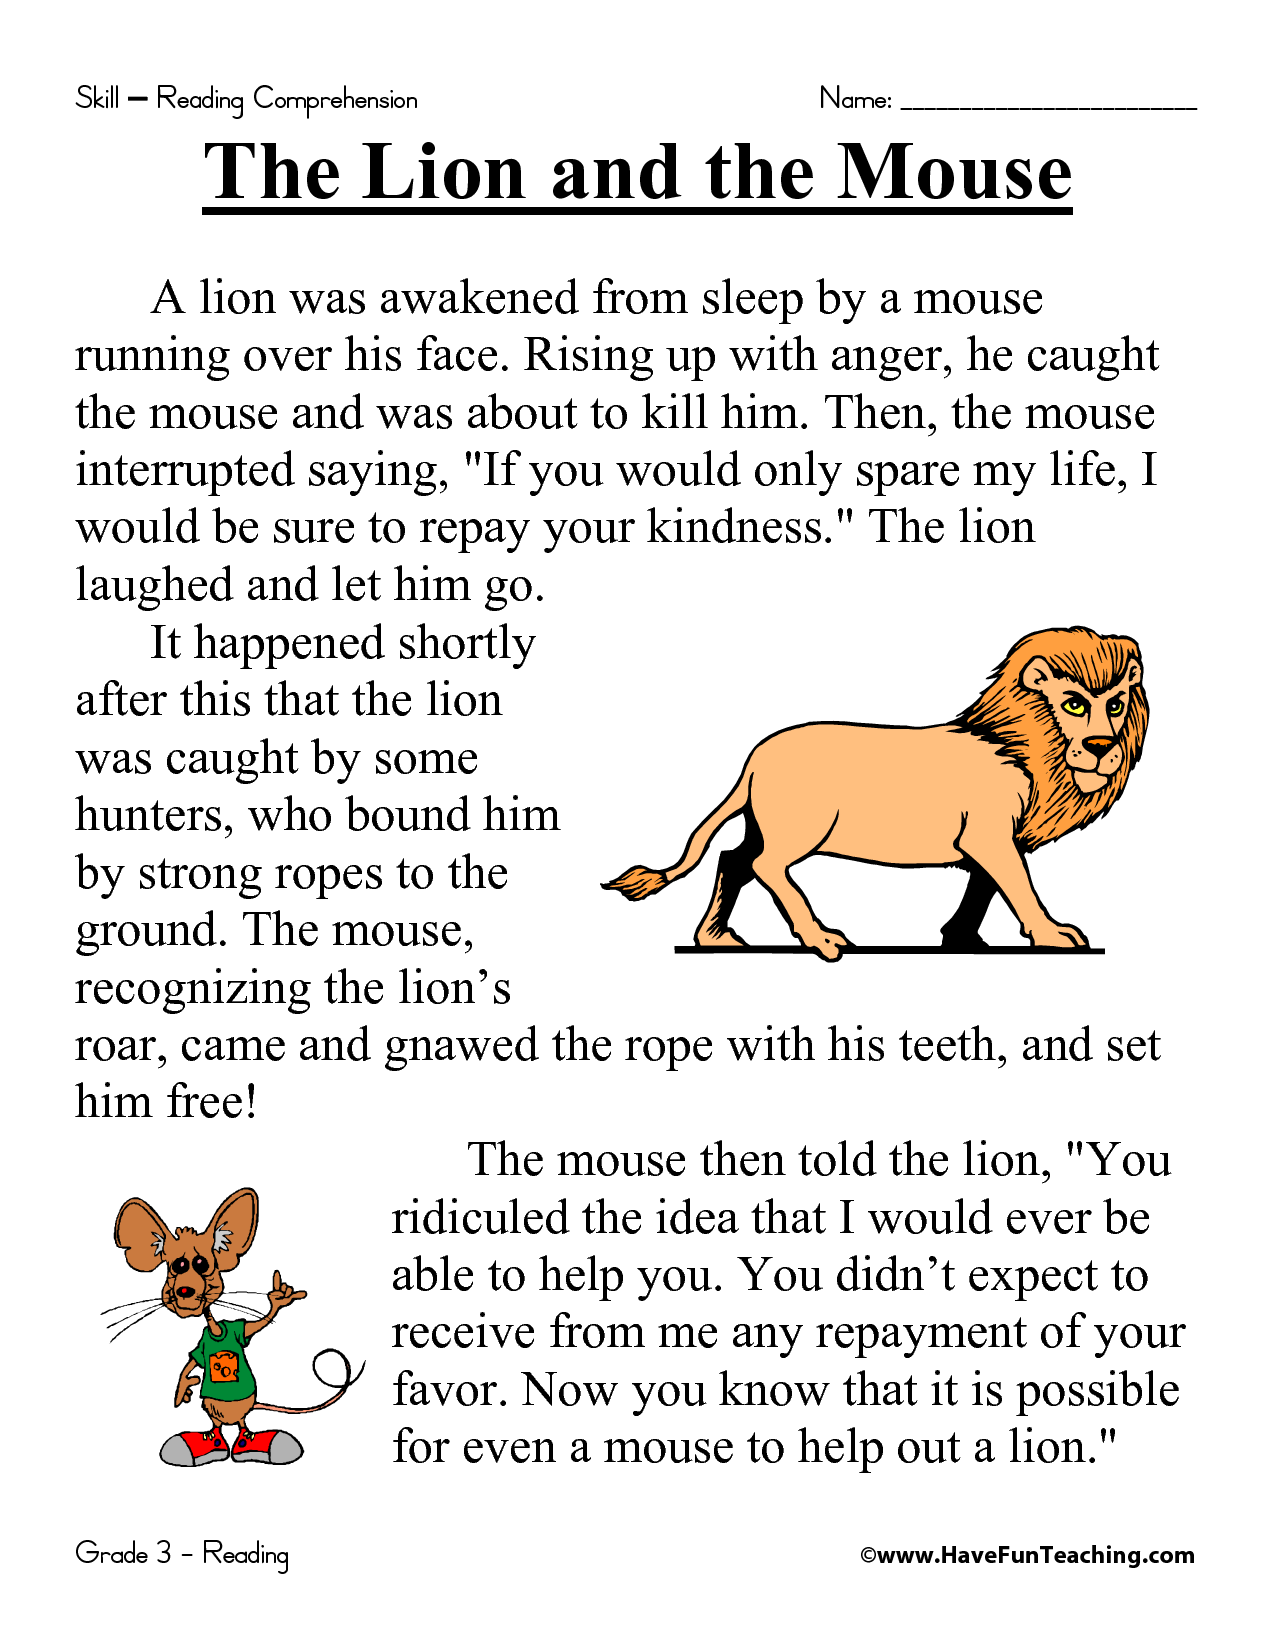 Worksheets Reading Comprehension Worksheets First Grade first grade reading comprehension worksheets the lion and mouse worksheet